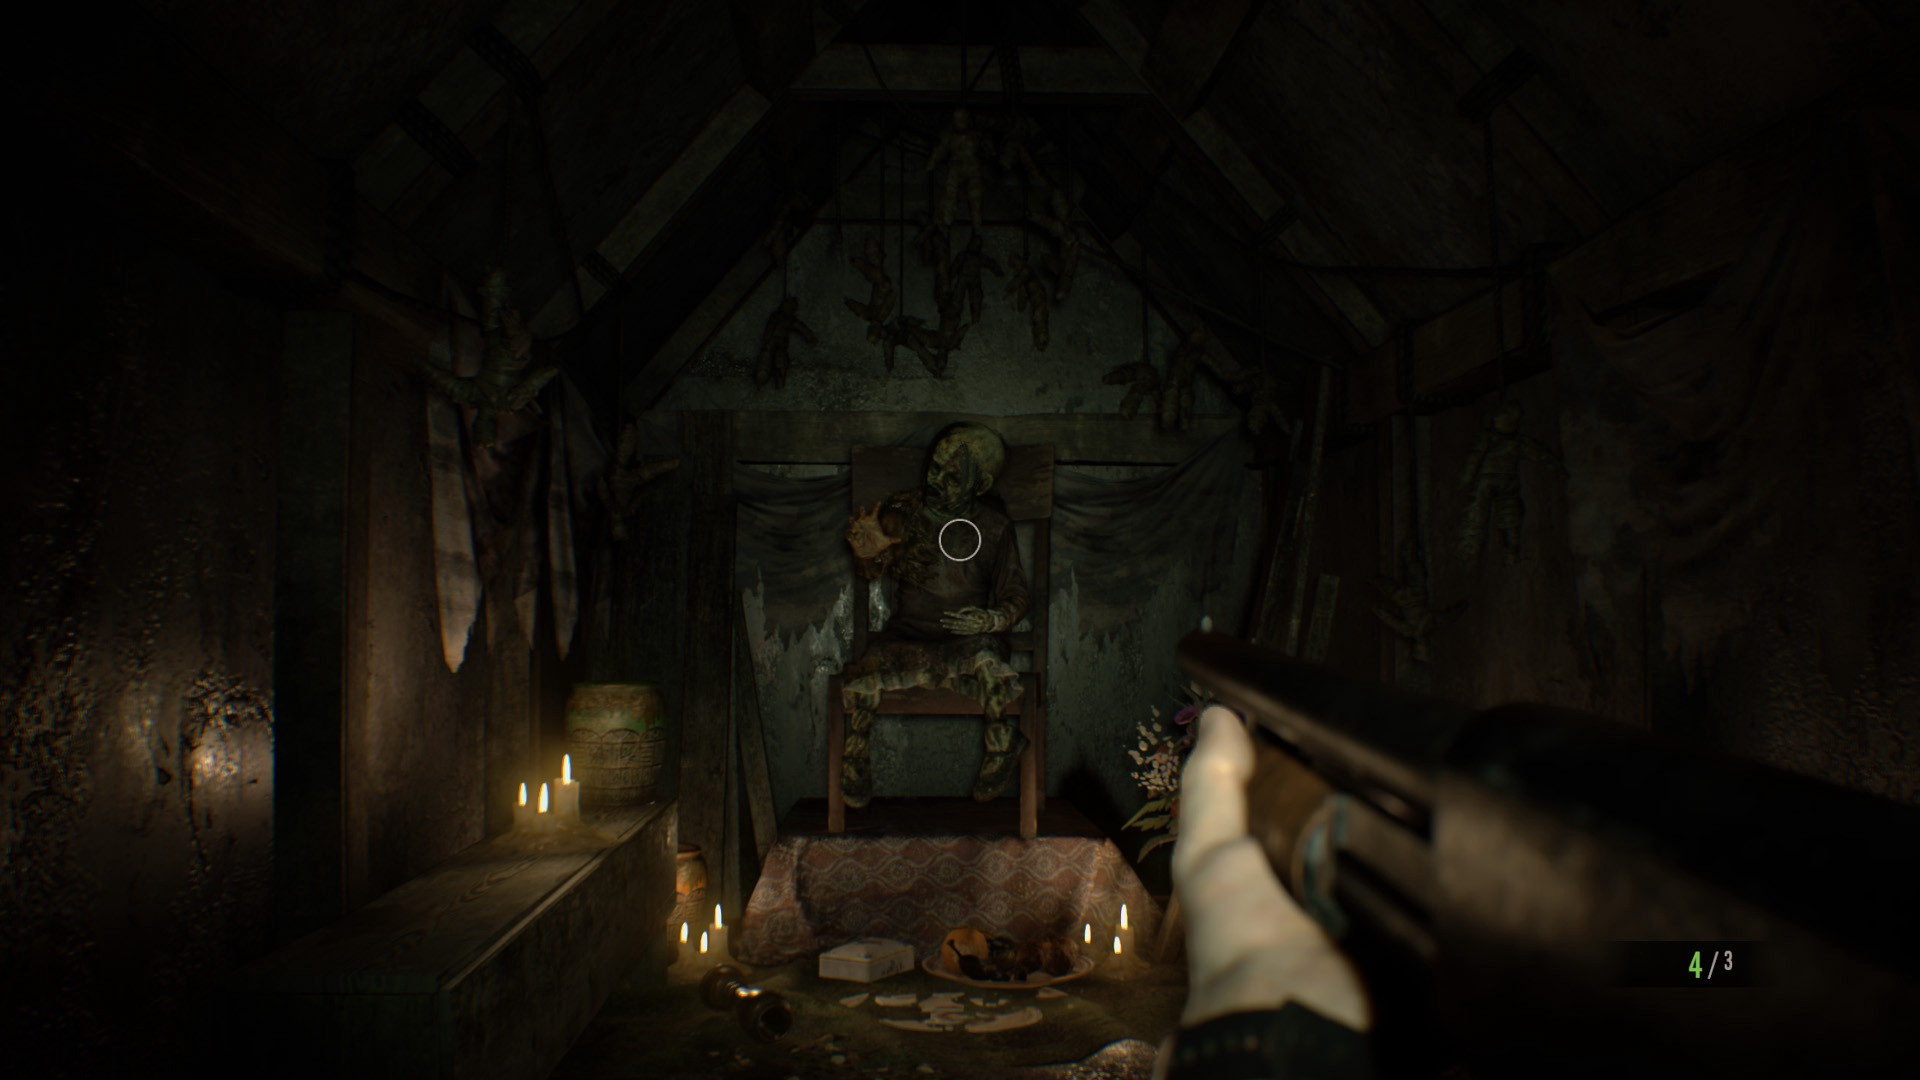 Vr In Resident Evil 7 Matters Even If You Re Too Scared To Try It